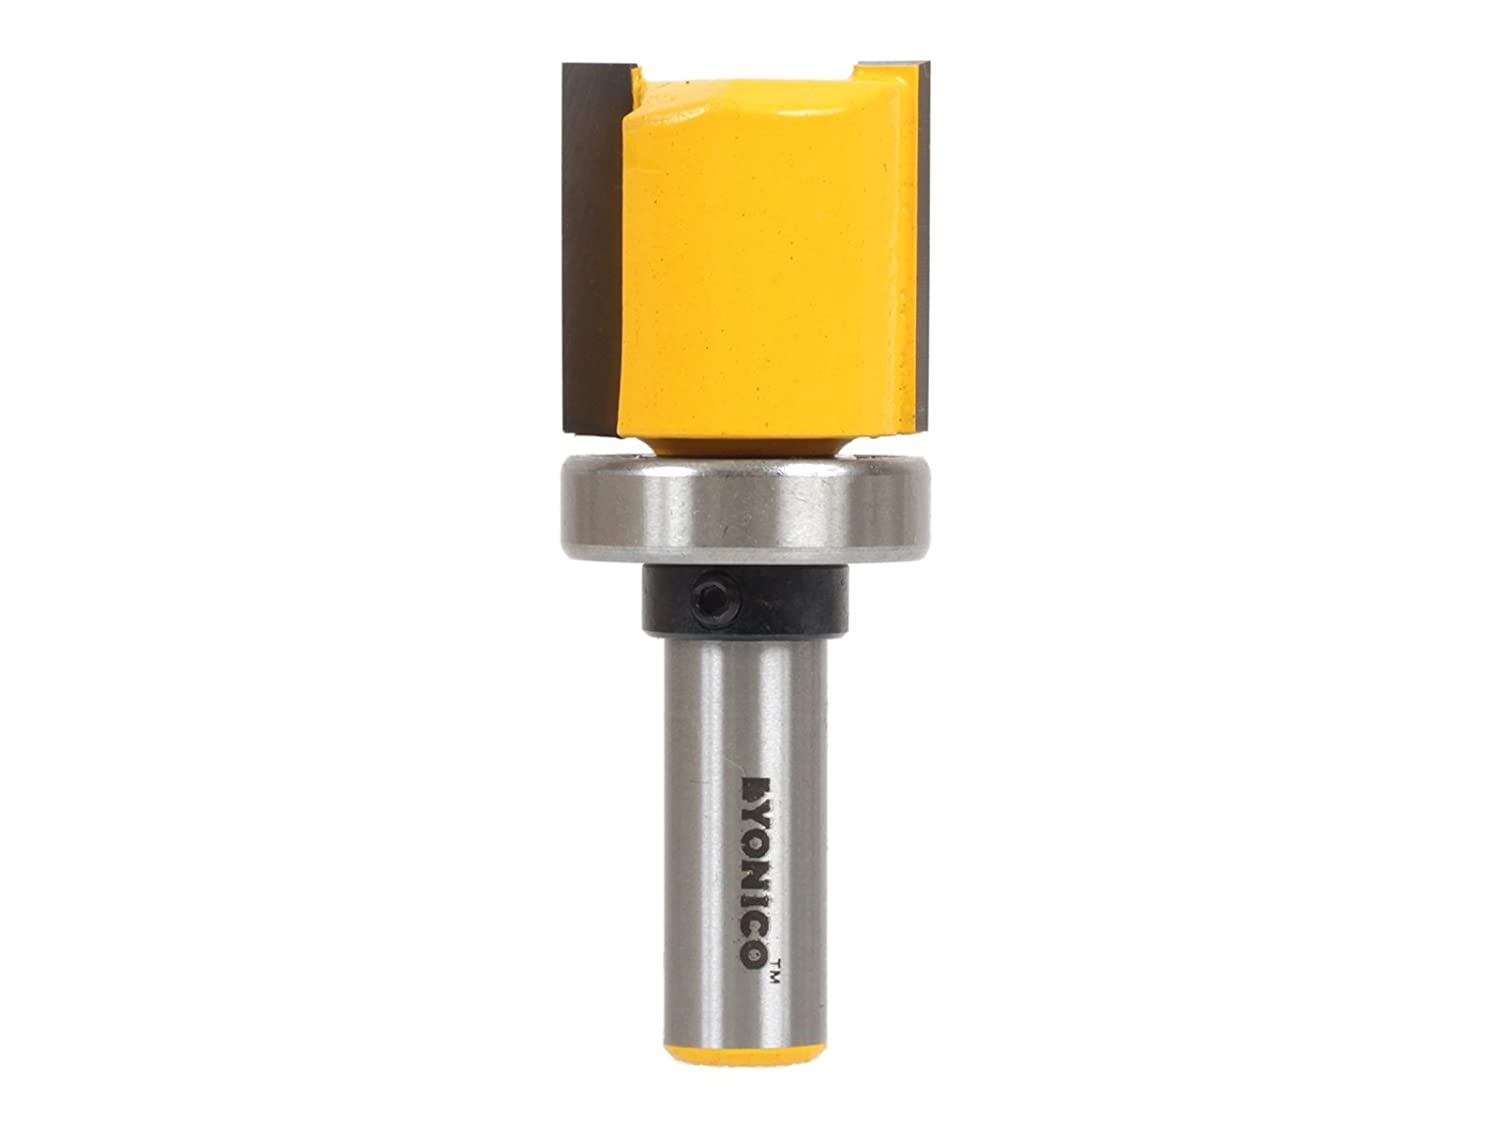 Yonico 14169q 1//2-Inch Hinge Mortise Flush Trim Template Router Bit 1//4-Inch Shank